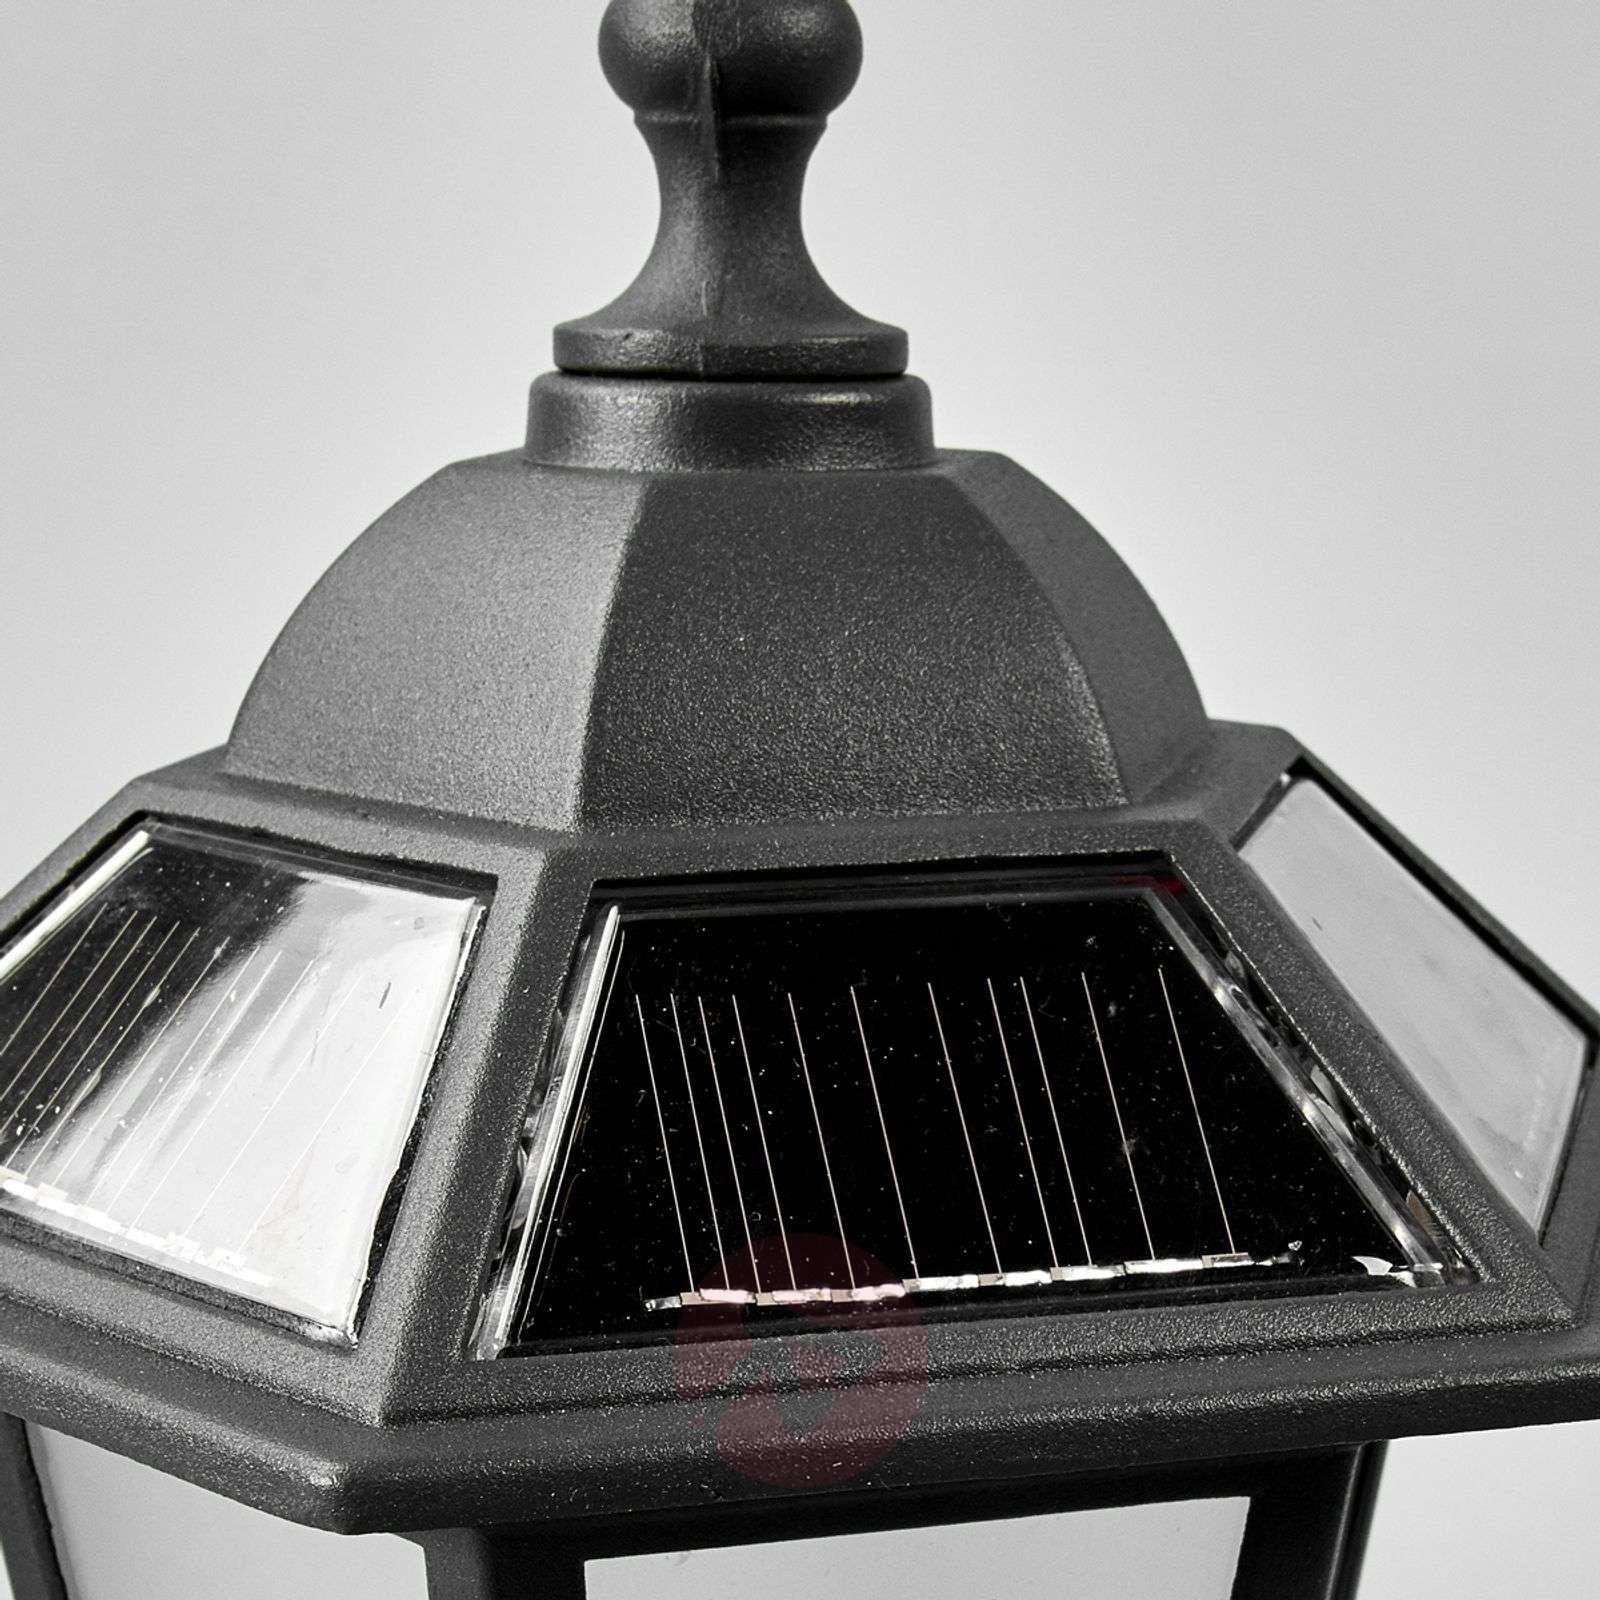 Kristin pillar light with LEDs and solar technology-9955024-02